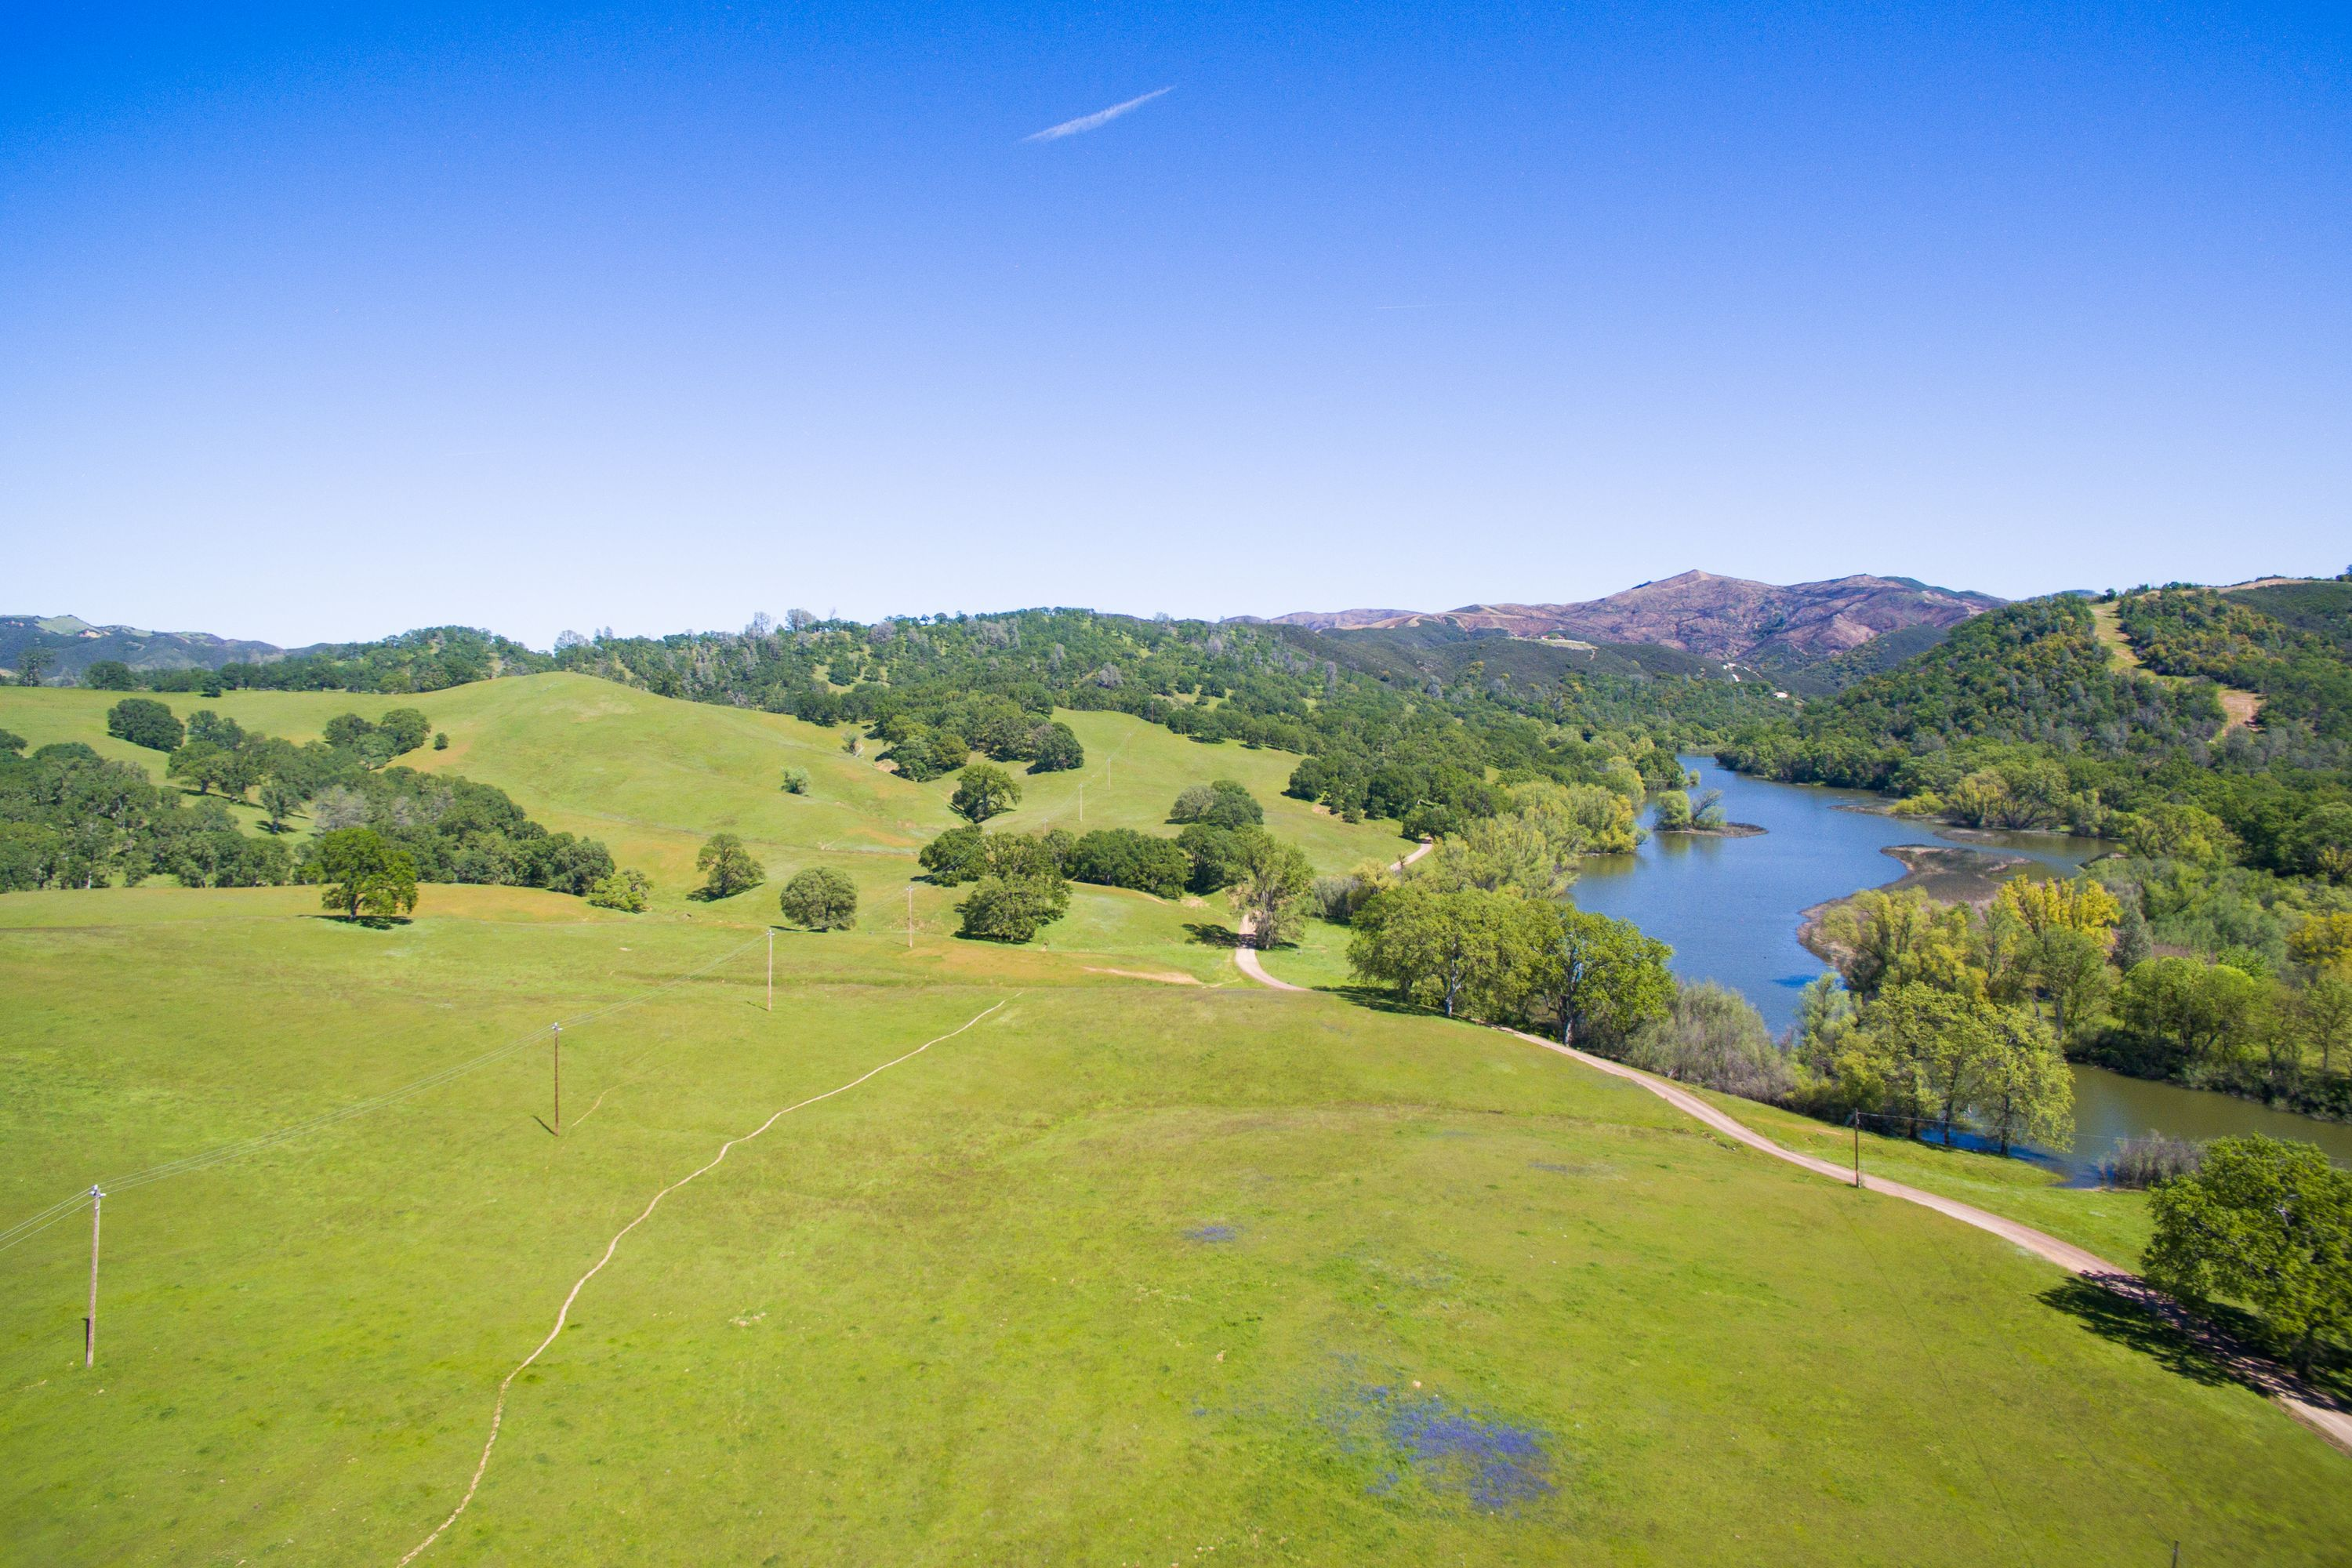 Land for Sale at Spectacular Development Opportunity in Lake County 17012 Dam Road Clearlake, California 95422 United States